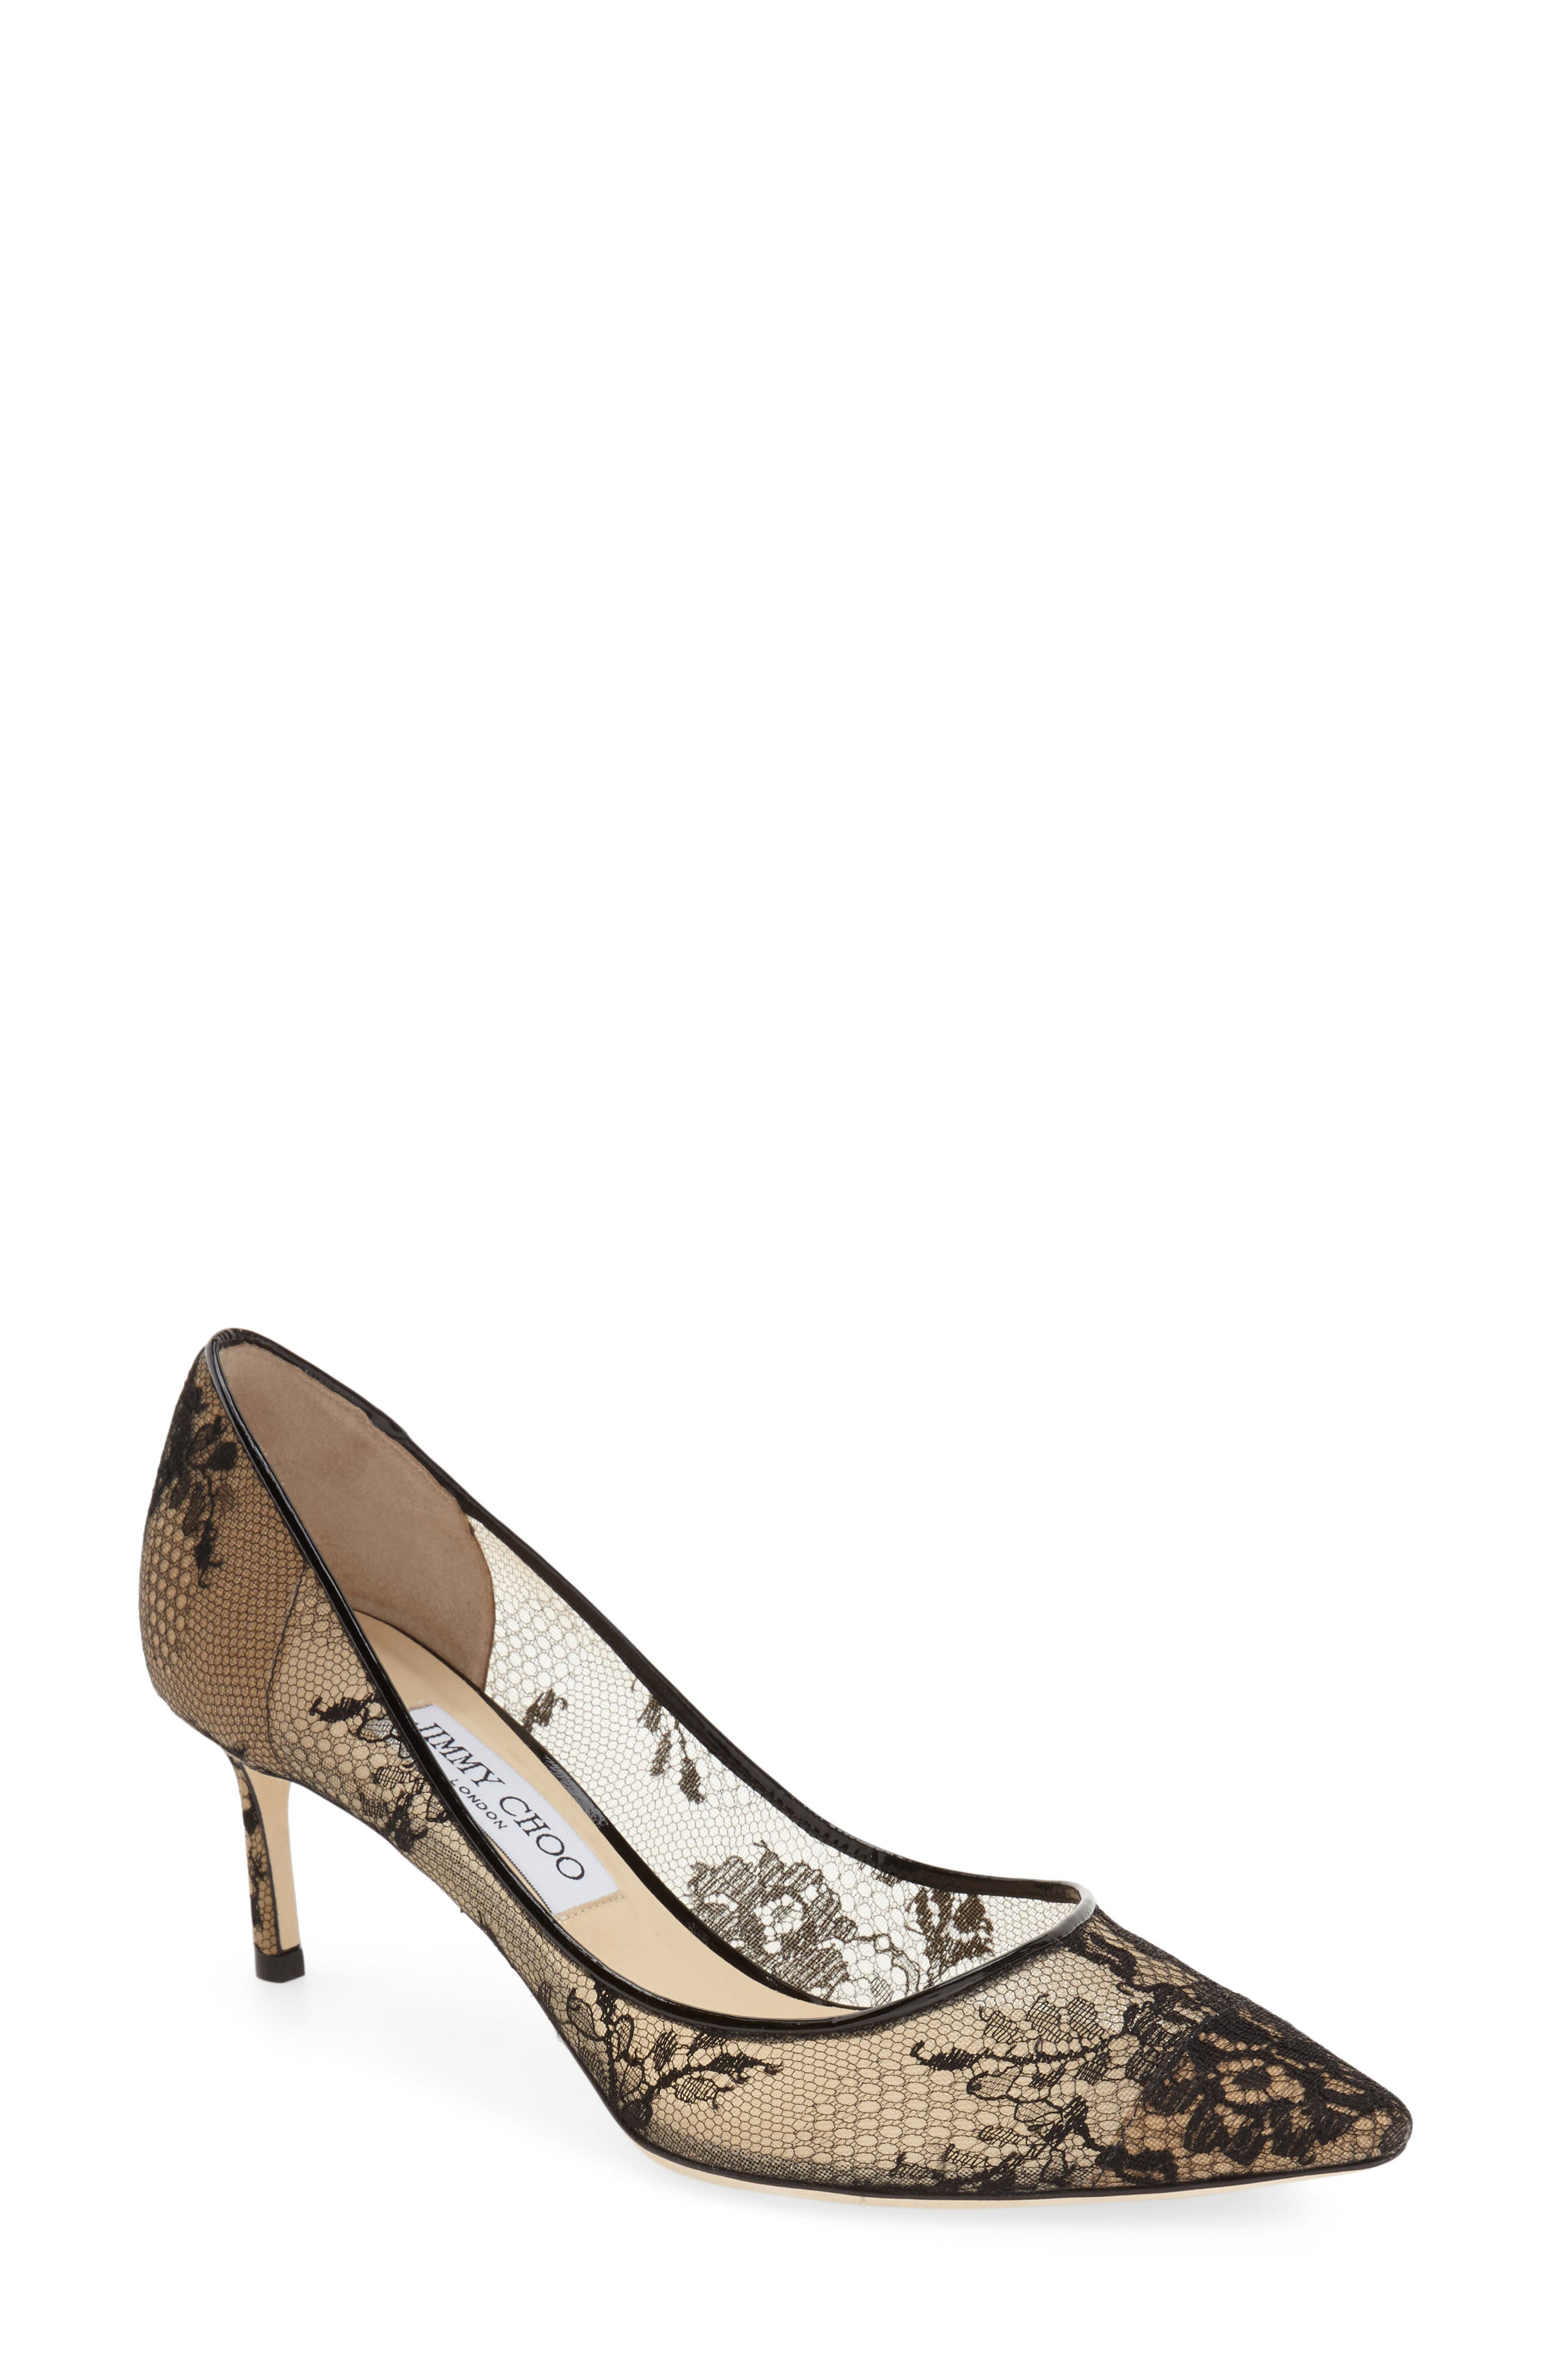 JIMMY CHOO,                             'Romy' Lace Pointy Toe Pump,                             Alternate thumbnail 3, color,                             002